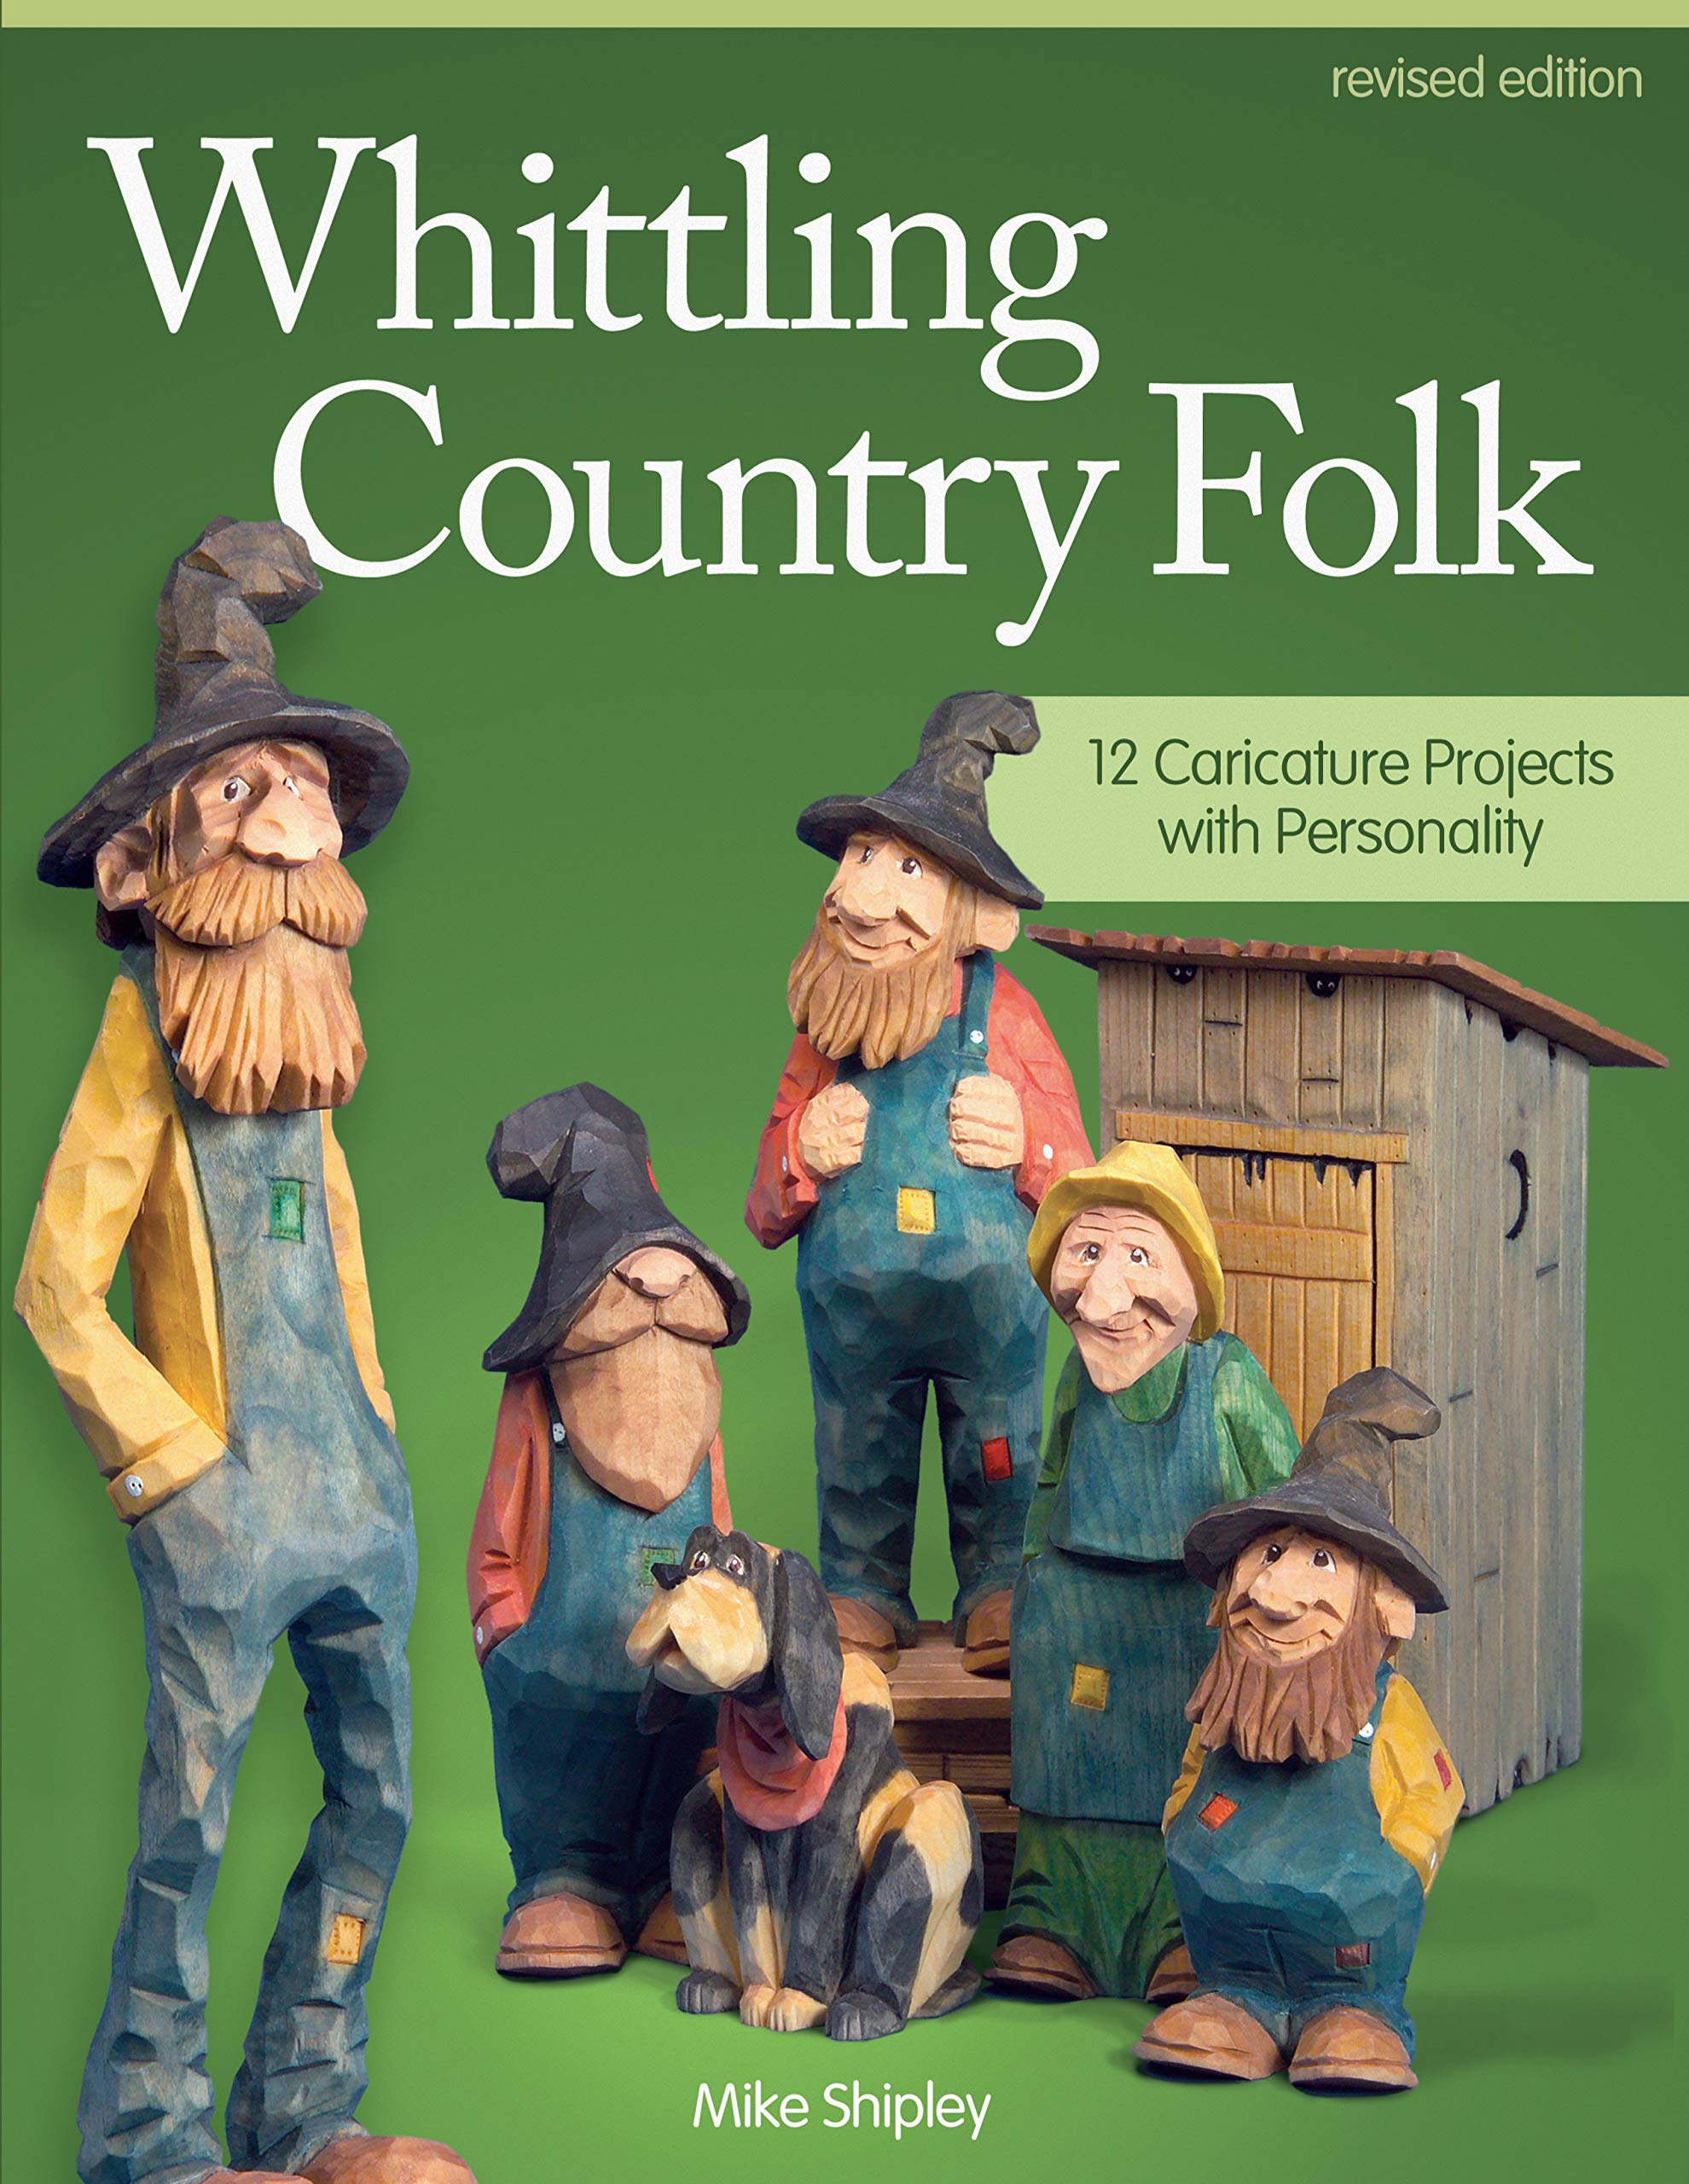 Whittling Country Folk Rev Edn  12 Caricature Projects With Personality